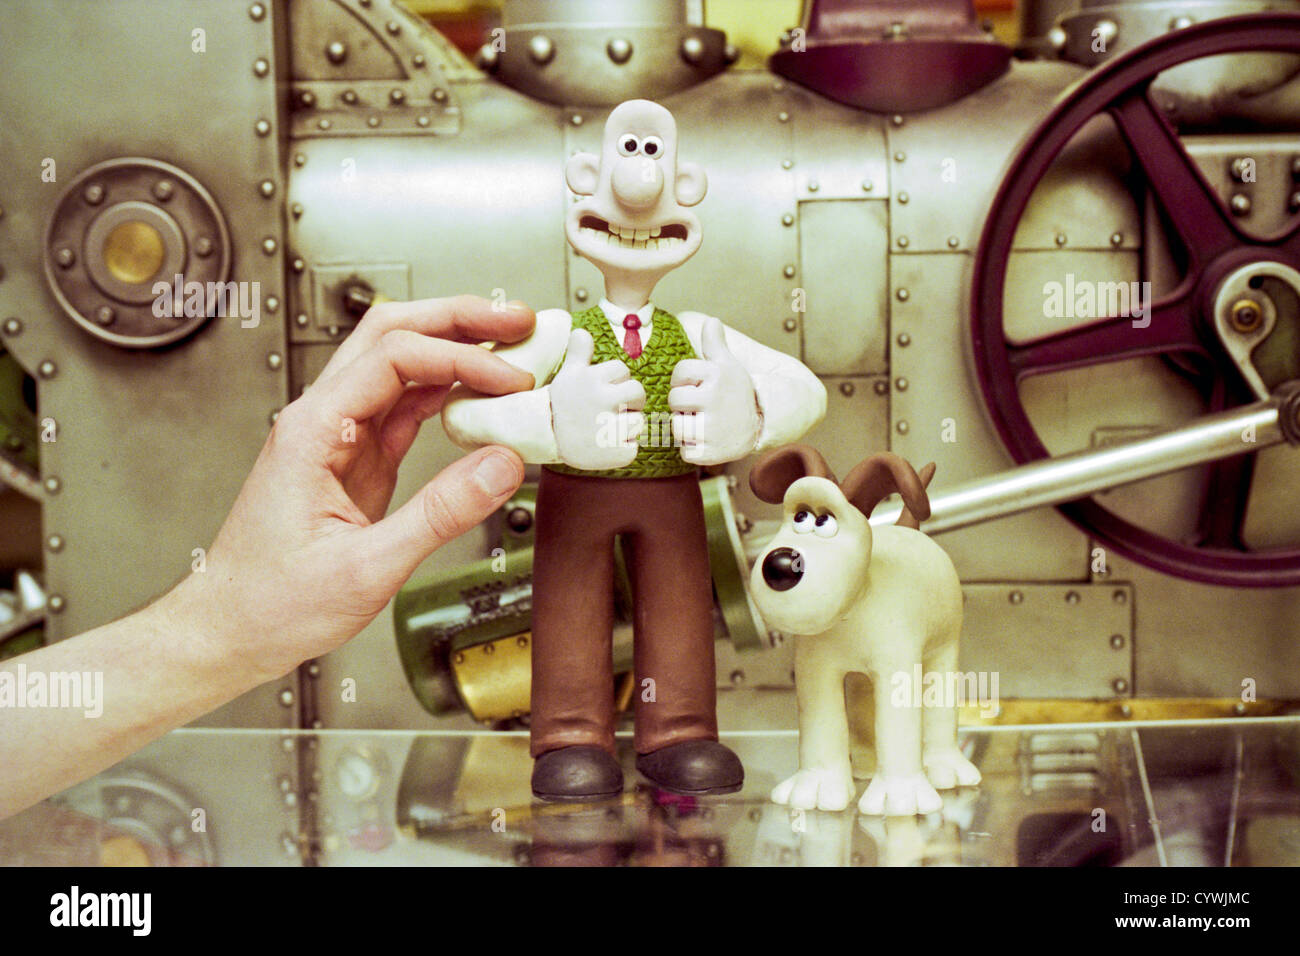 steve-box-key-character-animator-at-aardman-animation-pictured-with-CYWJMC.jpg